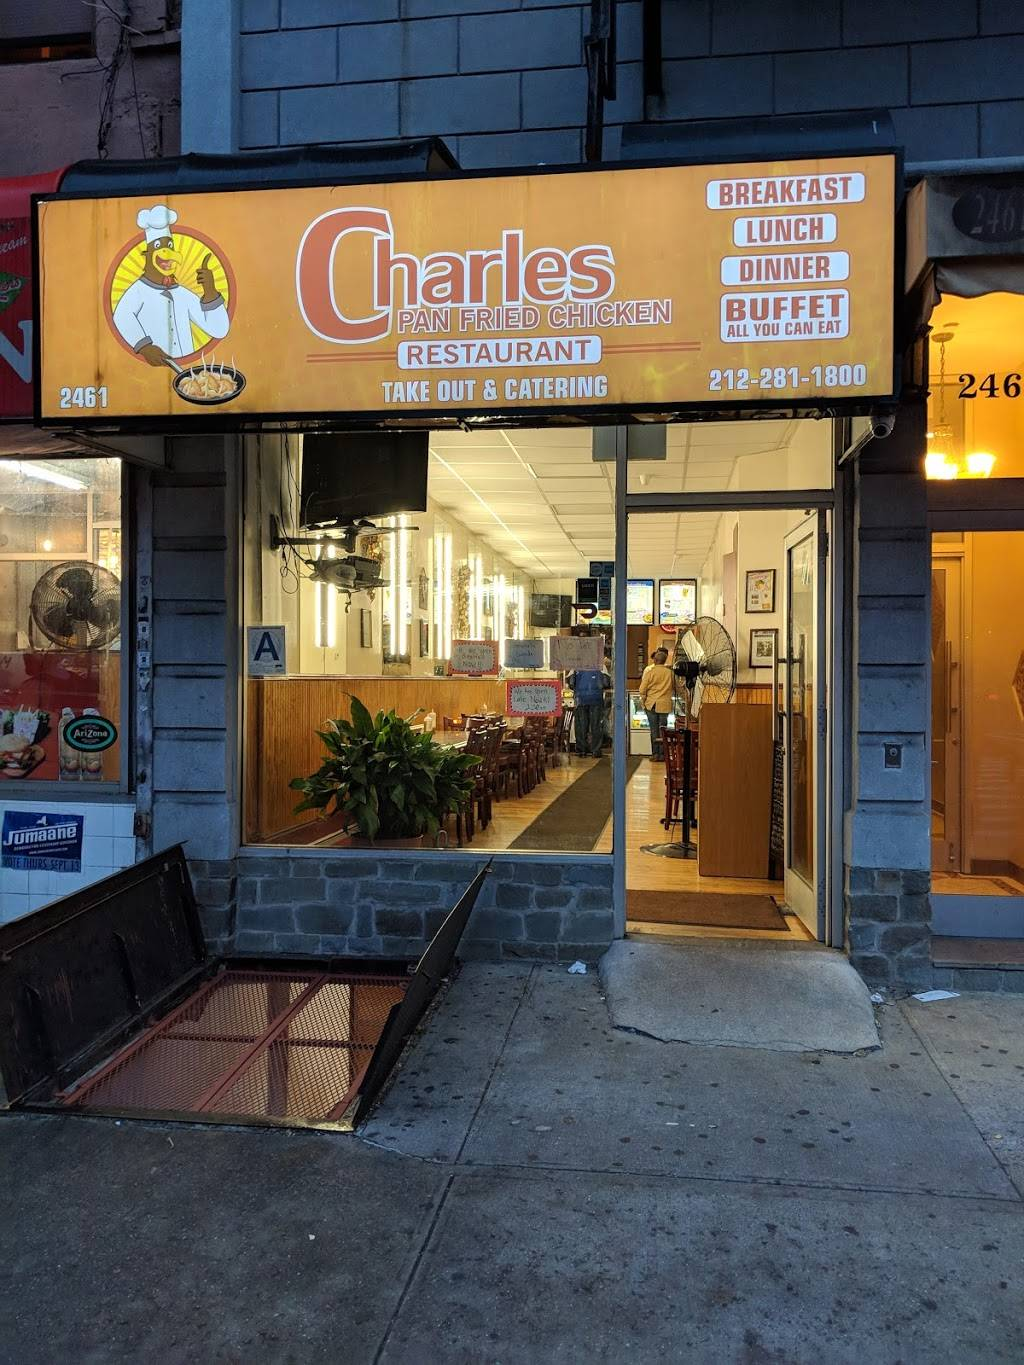 Charles Country Pan Fried Chicken | restaurant | 2461 Frederick Douglass Blvd, New York, NY 10027, USA | 2122811800 OR +1 212-281-1800